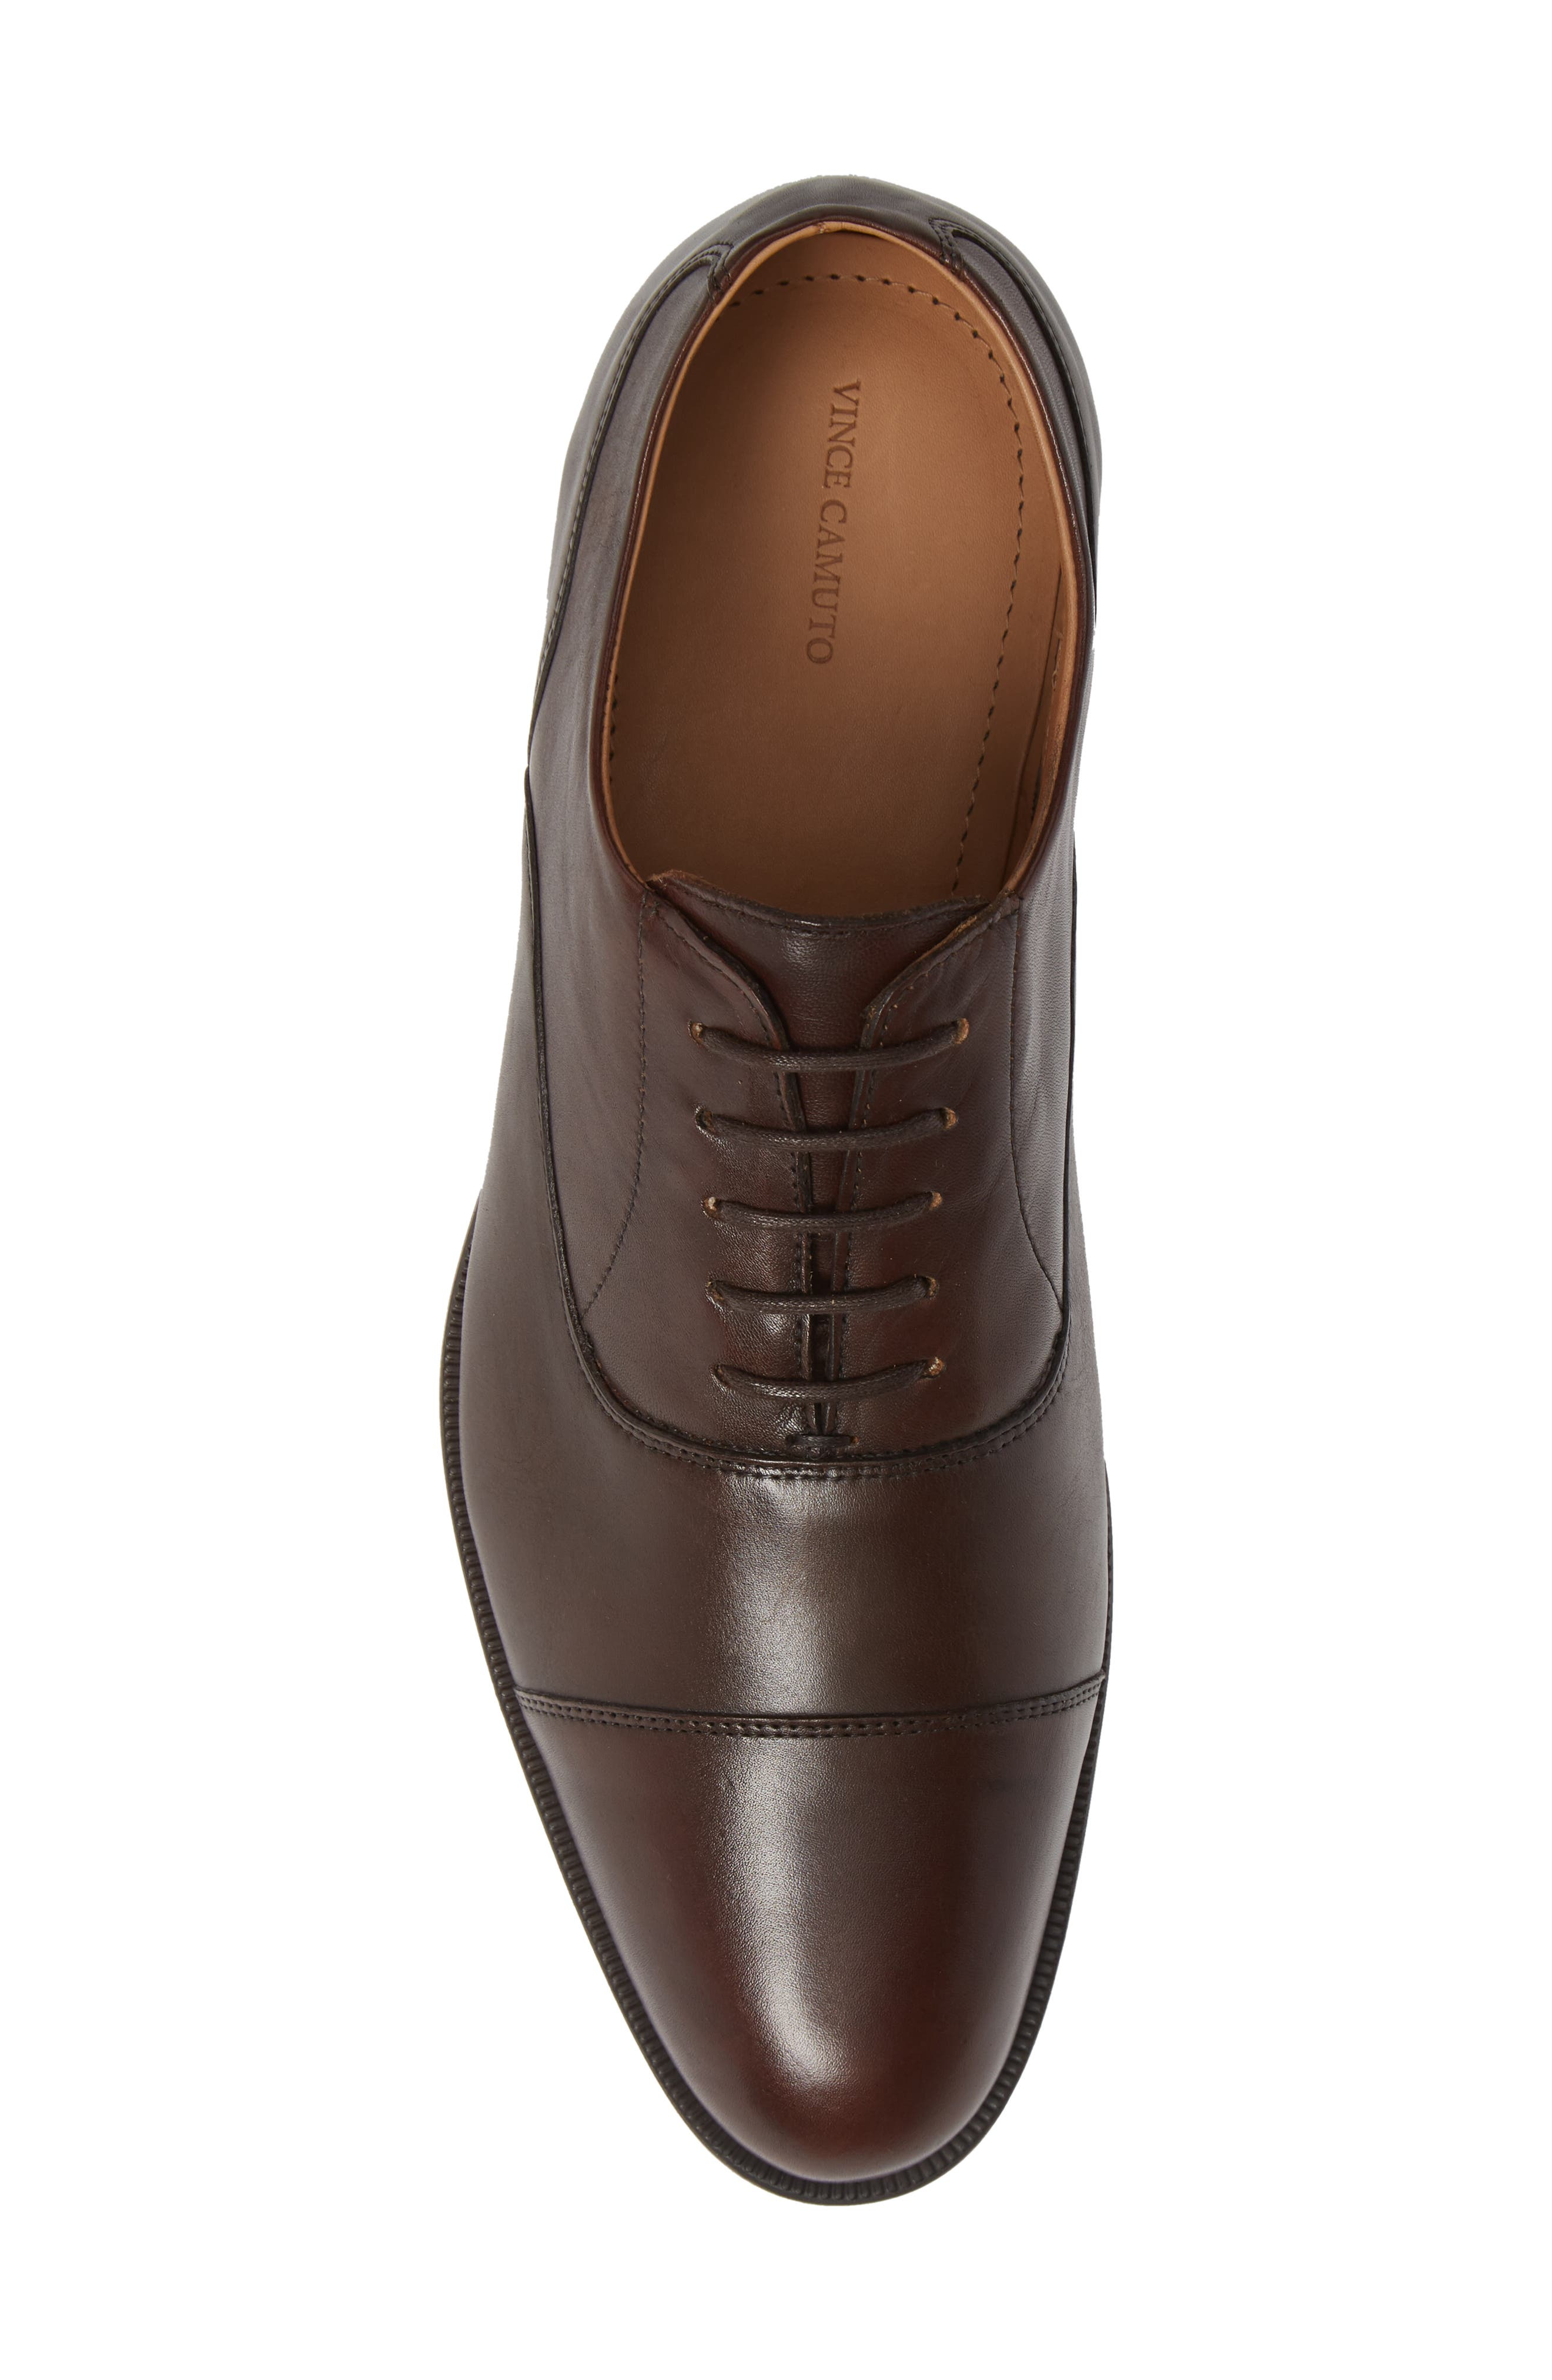 VINCE CAMUTO, Iven Cap Toe Oxford, Alternate thumbnail 5, color, DARK BROWN LEATHER